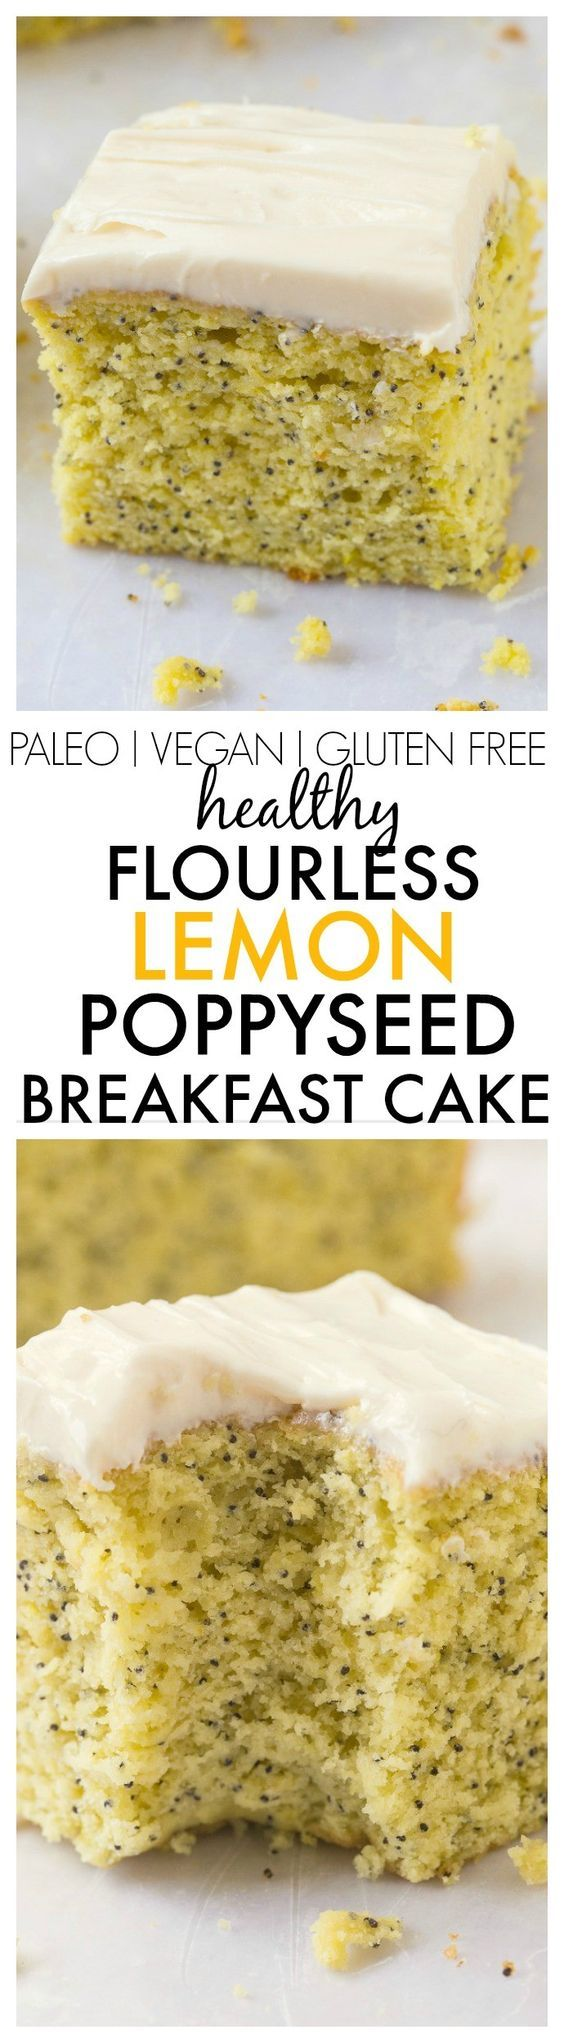 Healthy Flourless Lemon Poppy Seed Breakfast Cake- Light and fluffy on the inside, tender on the outside, an accidentally healthy breakfast, dessert or snack- Absolutely NO butter, oil, flour or sugar! {vegan, gluten free, paleo recipe}- thebigmansworld.c